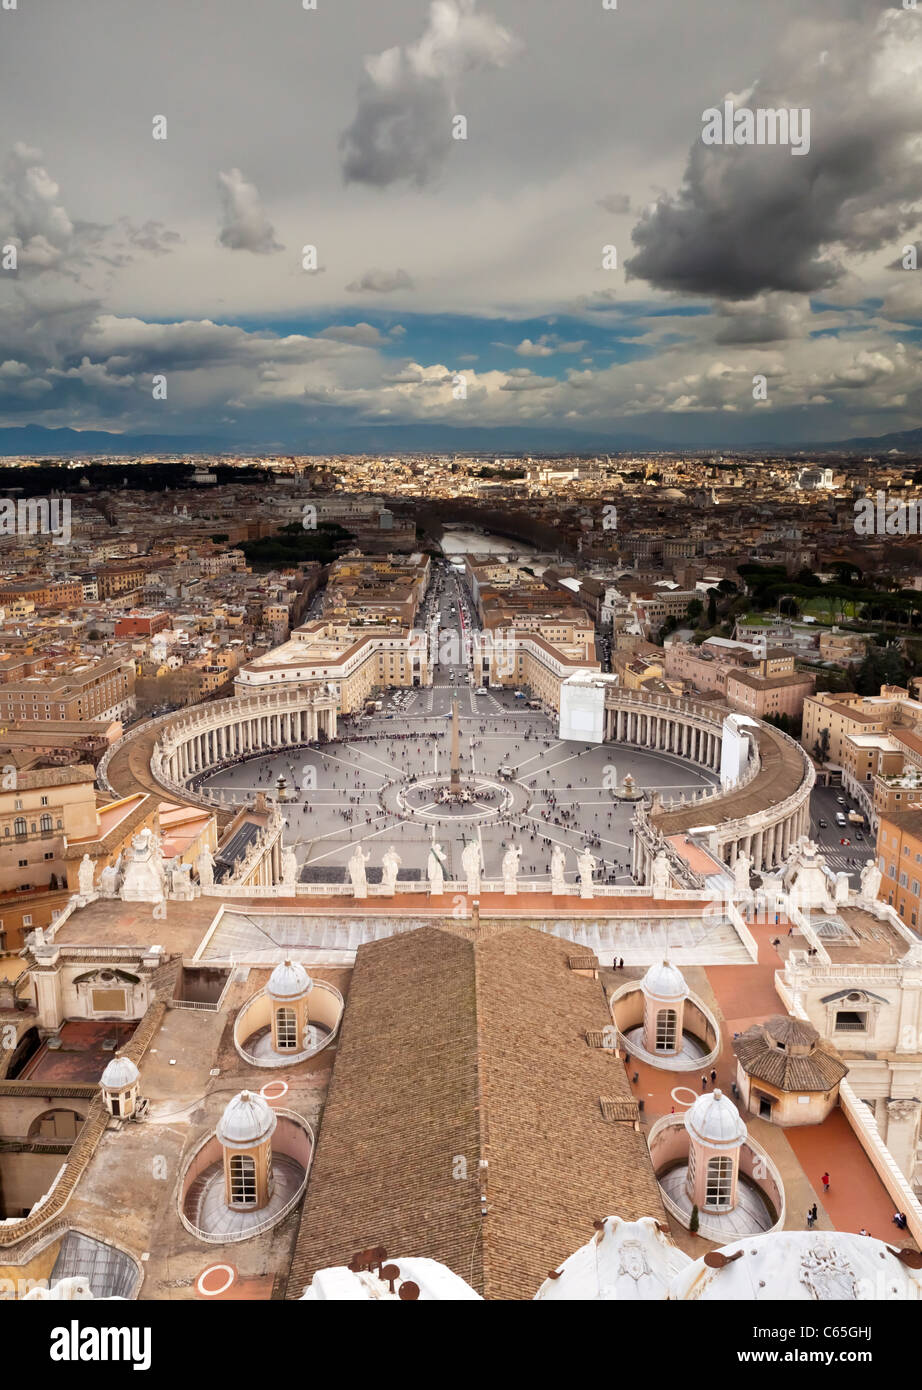 The view over Rome from the top of St Peters Dome, Vatican City. Stock Photo